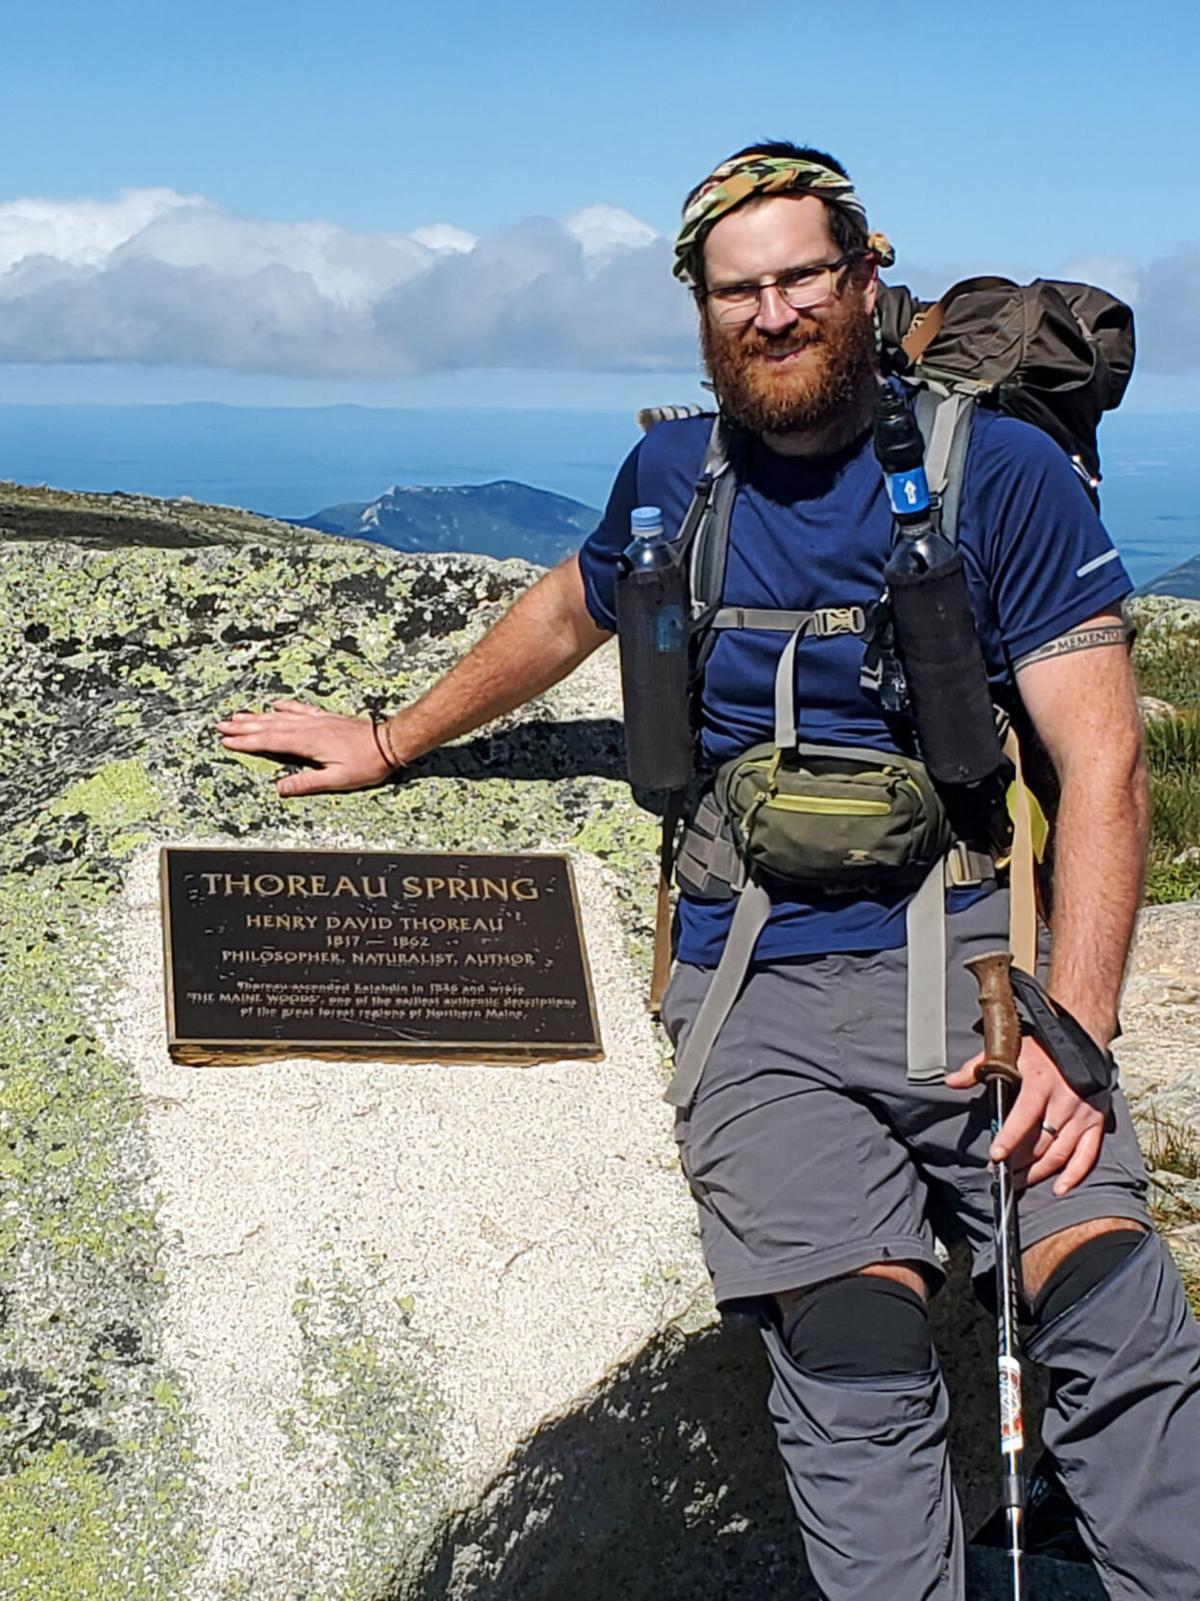 Local native finds everlasting friendship on Appalachian Trail